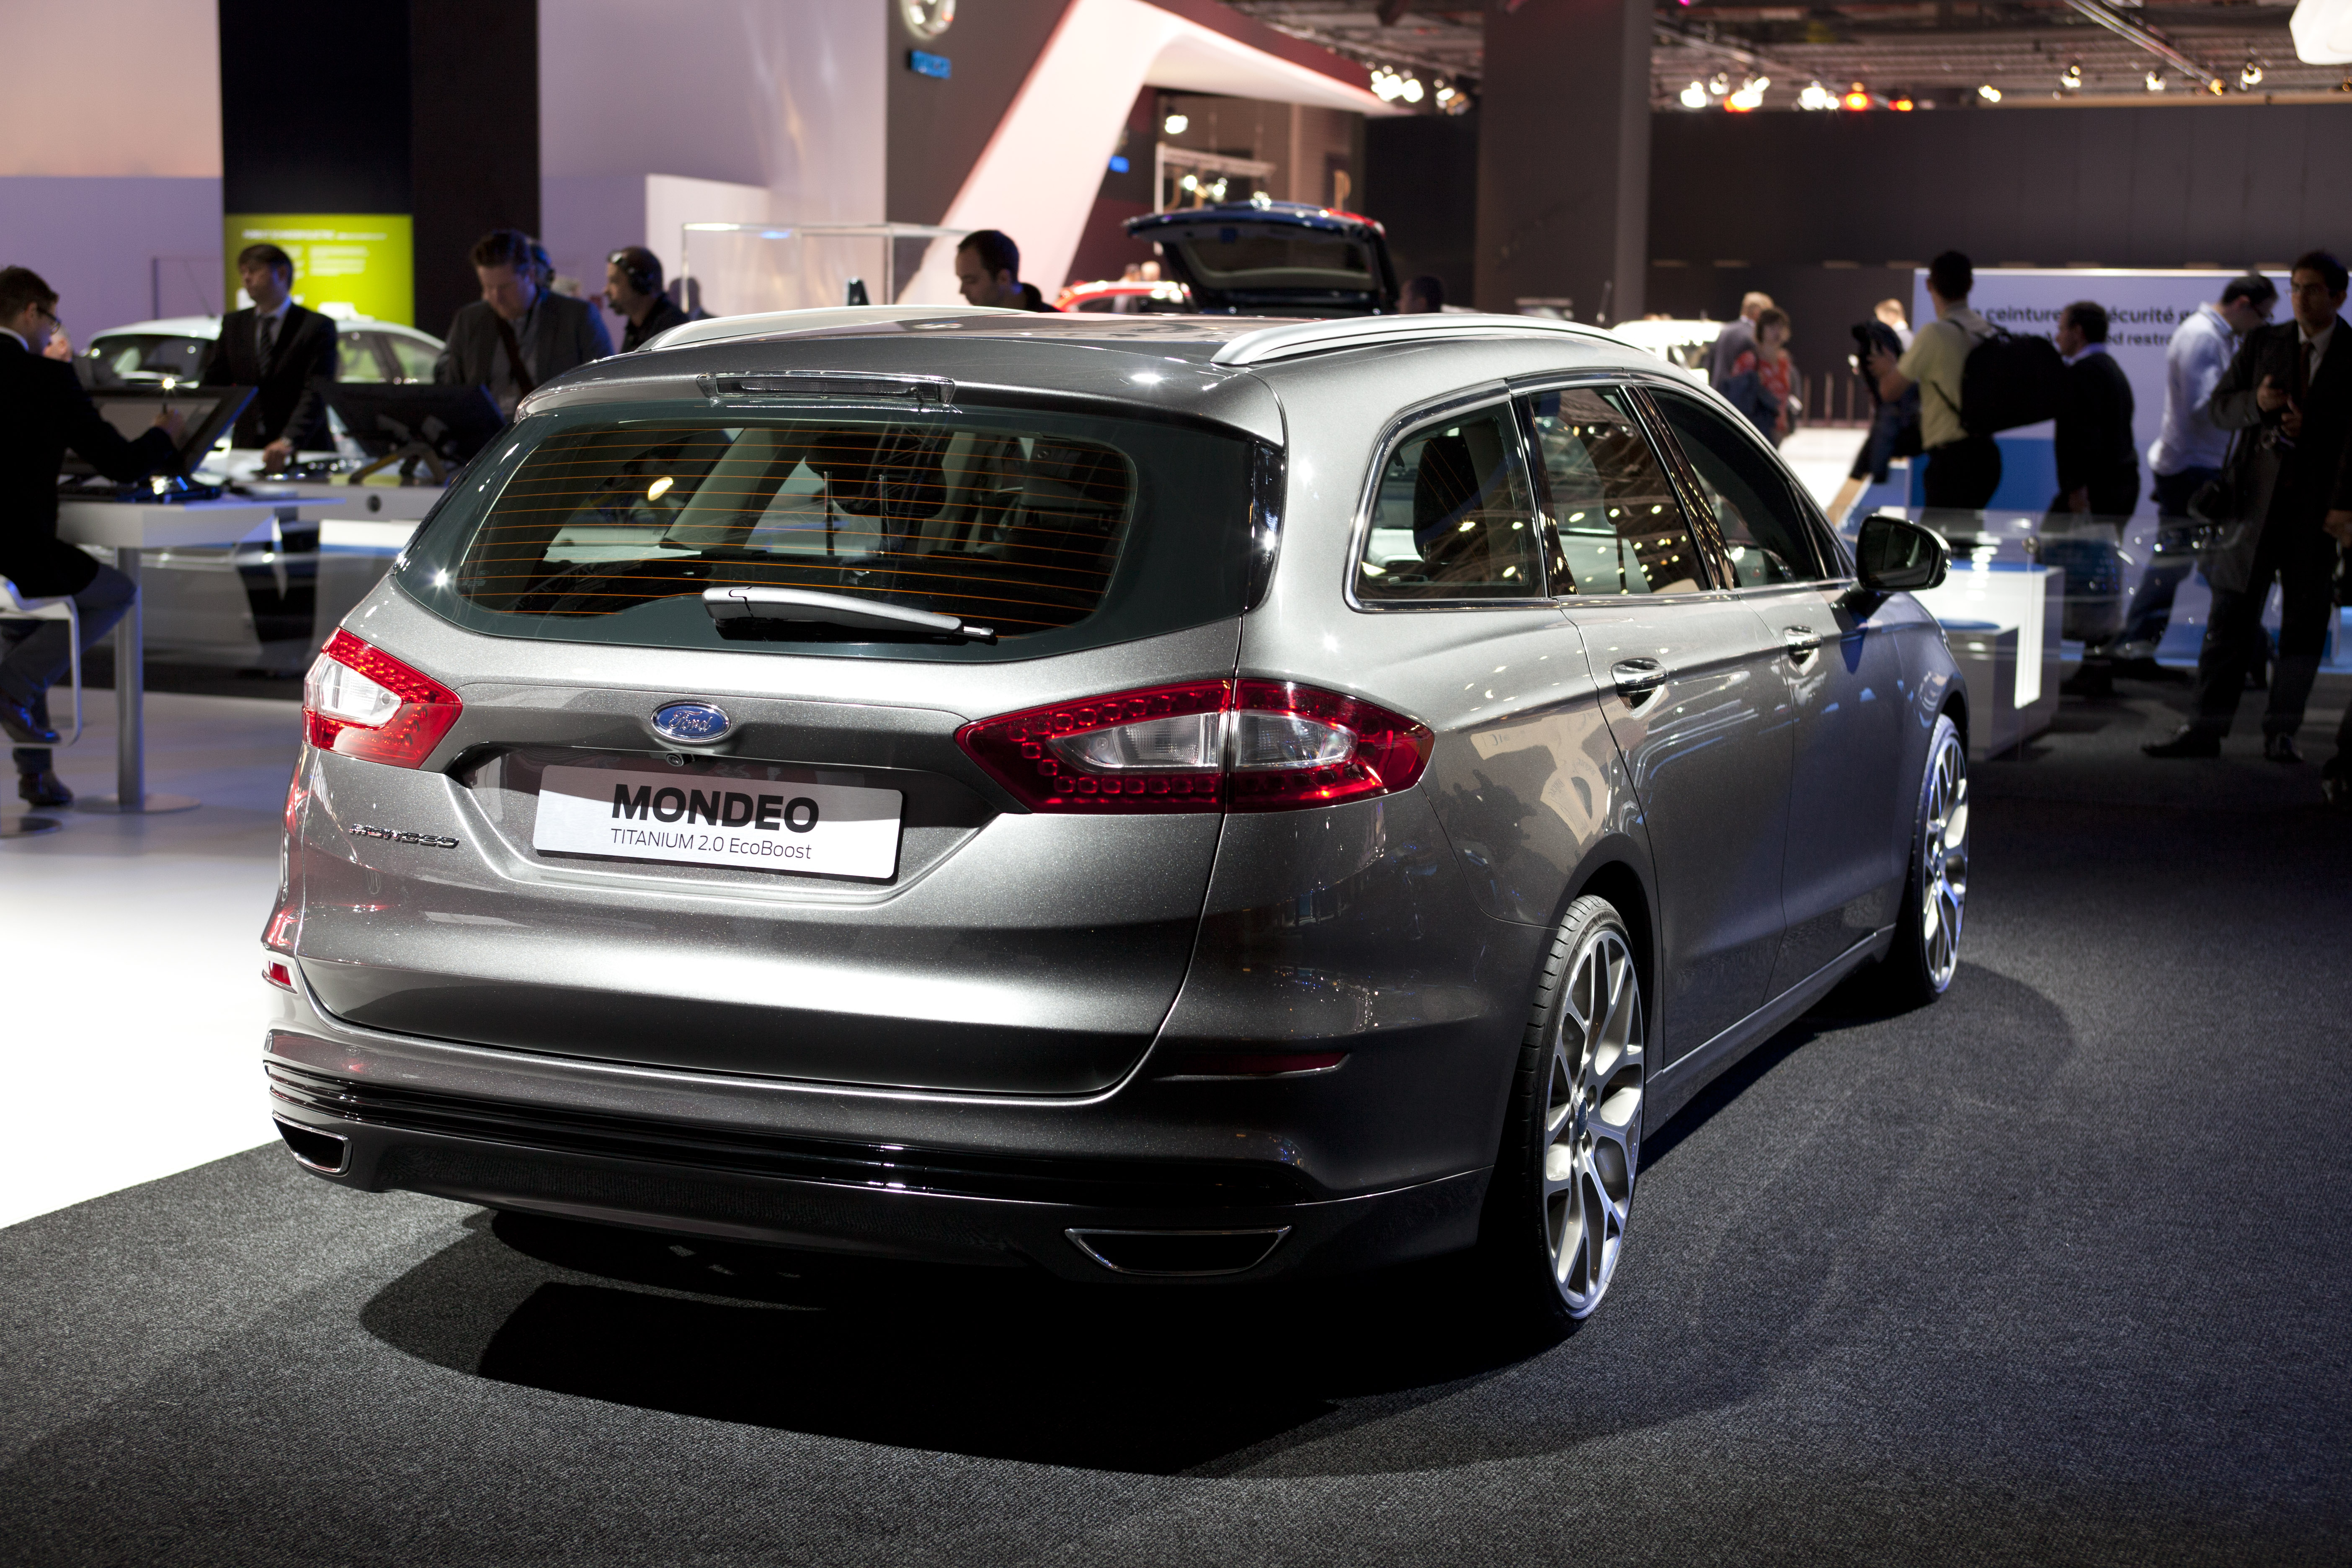 Ford Mondeo Wagon interior specifications